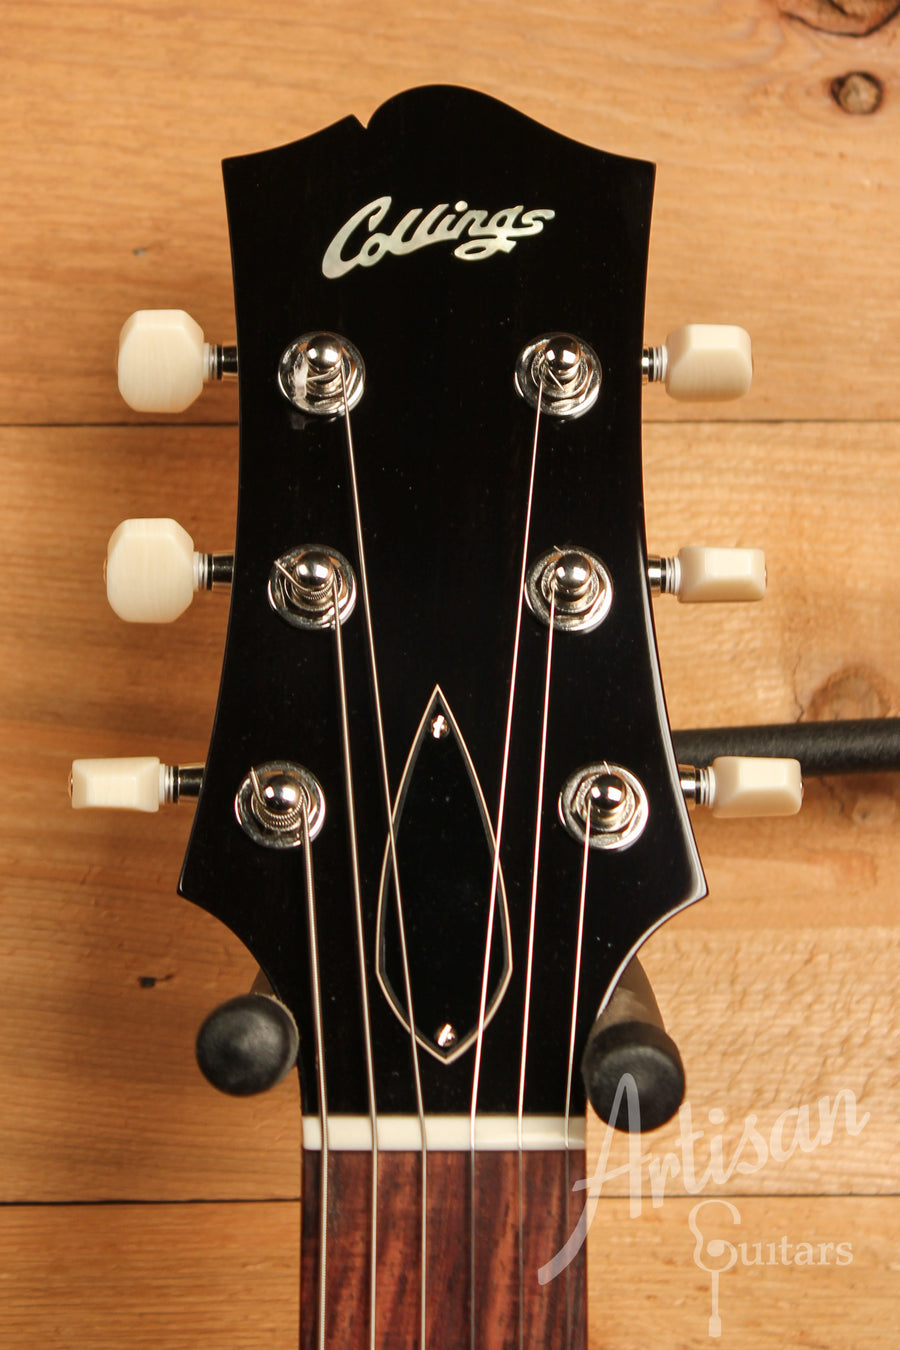 Collings I 35 LC Dark Cherry Finish with Lollar P90's ID-11375